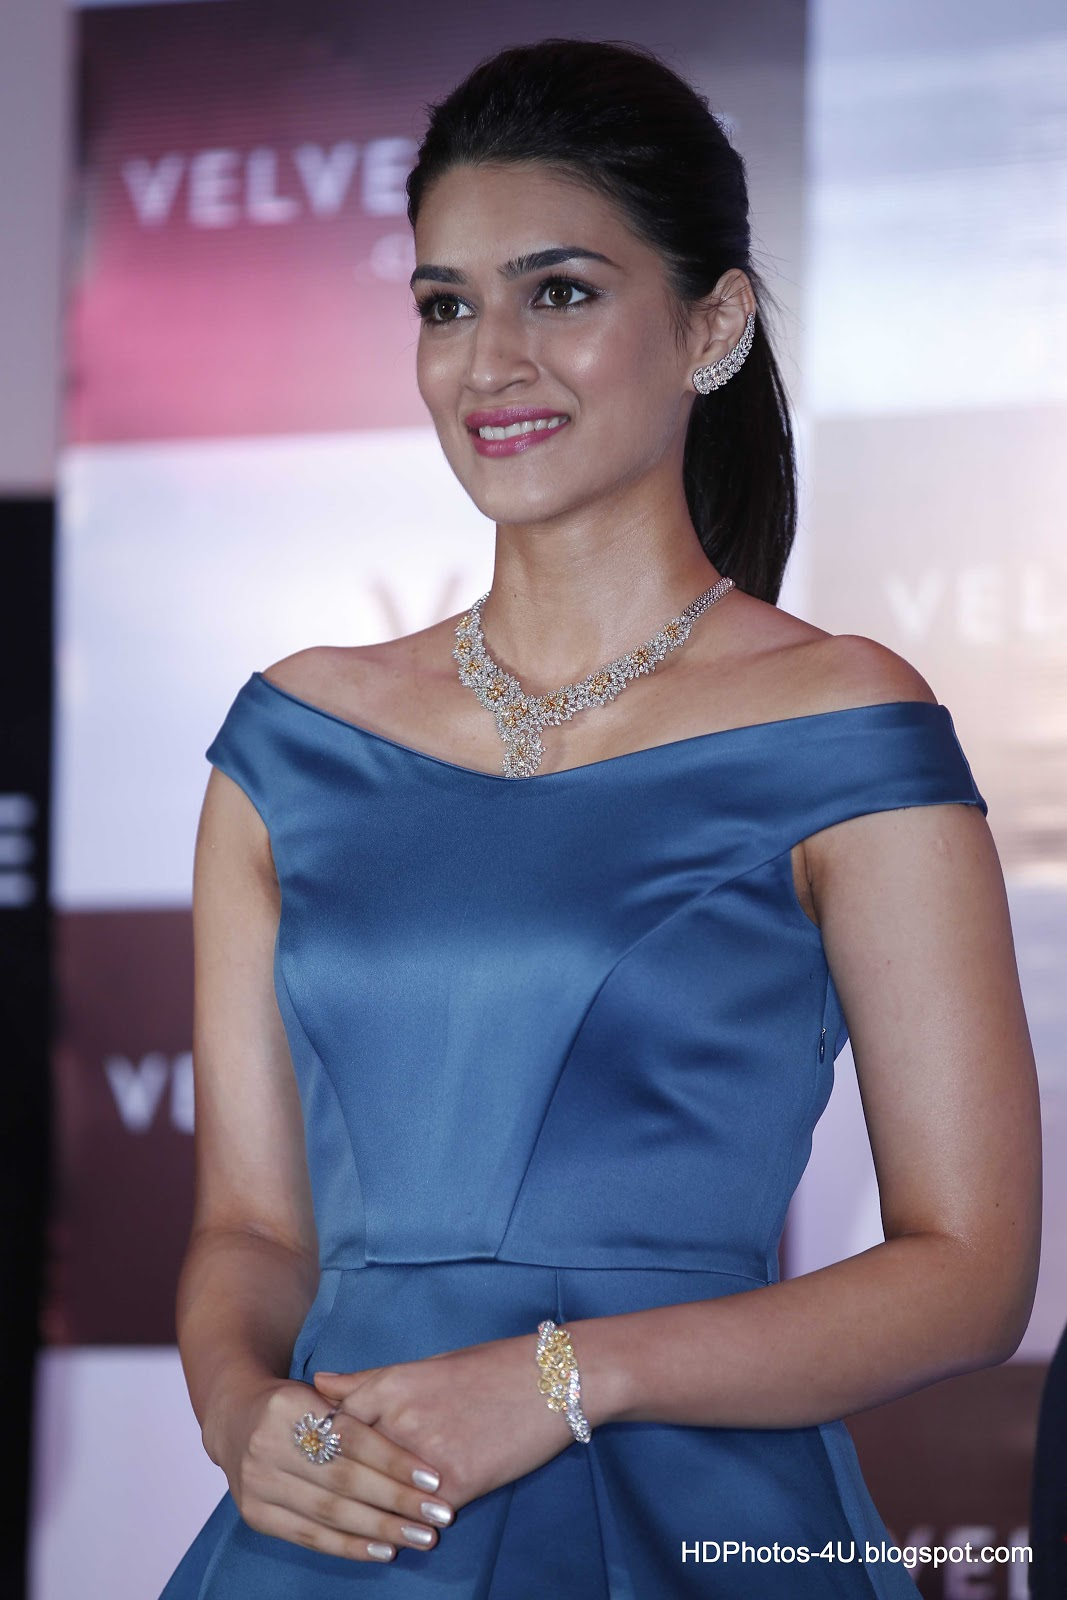 Kriti sanon images hd wallpaper all 4u wallpaper - Her Parents Are All Set To Come Down To Bombay And Make This Birthday Special For Kriti Infact They Have Also Planned The Entire Day For Kriti And Will